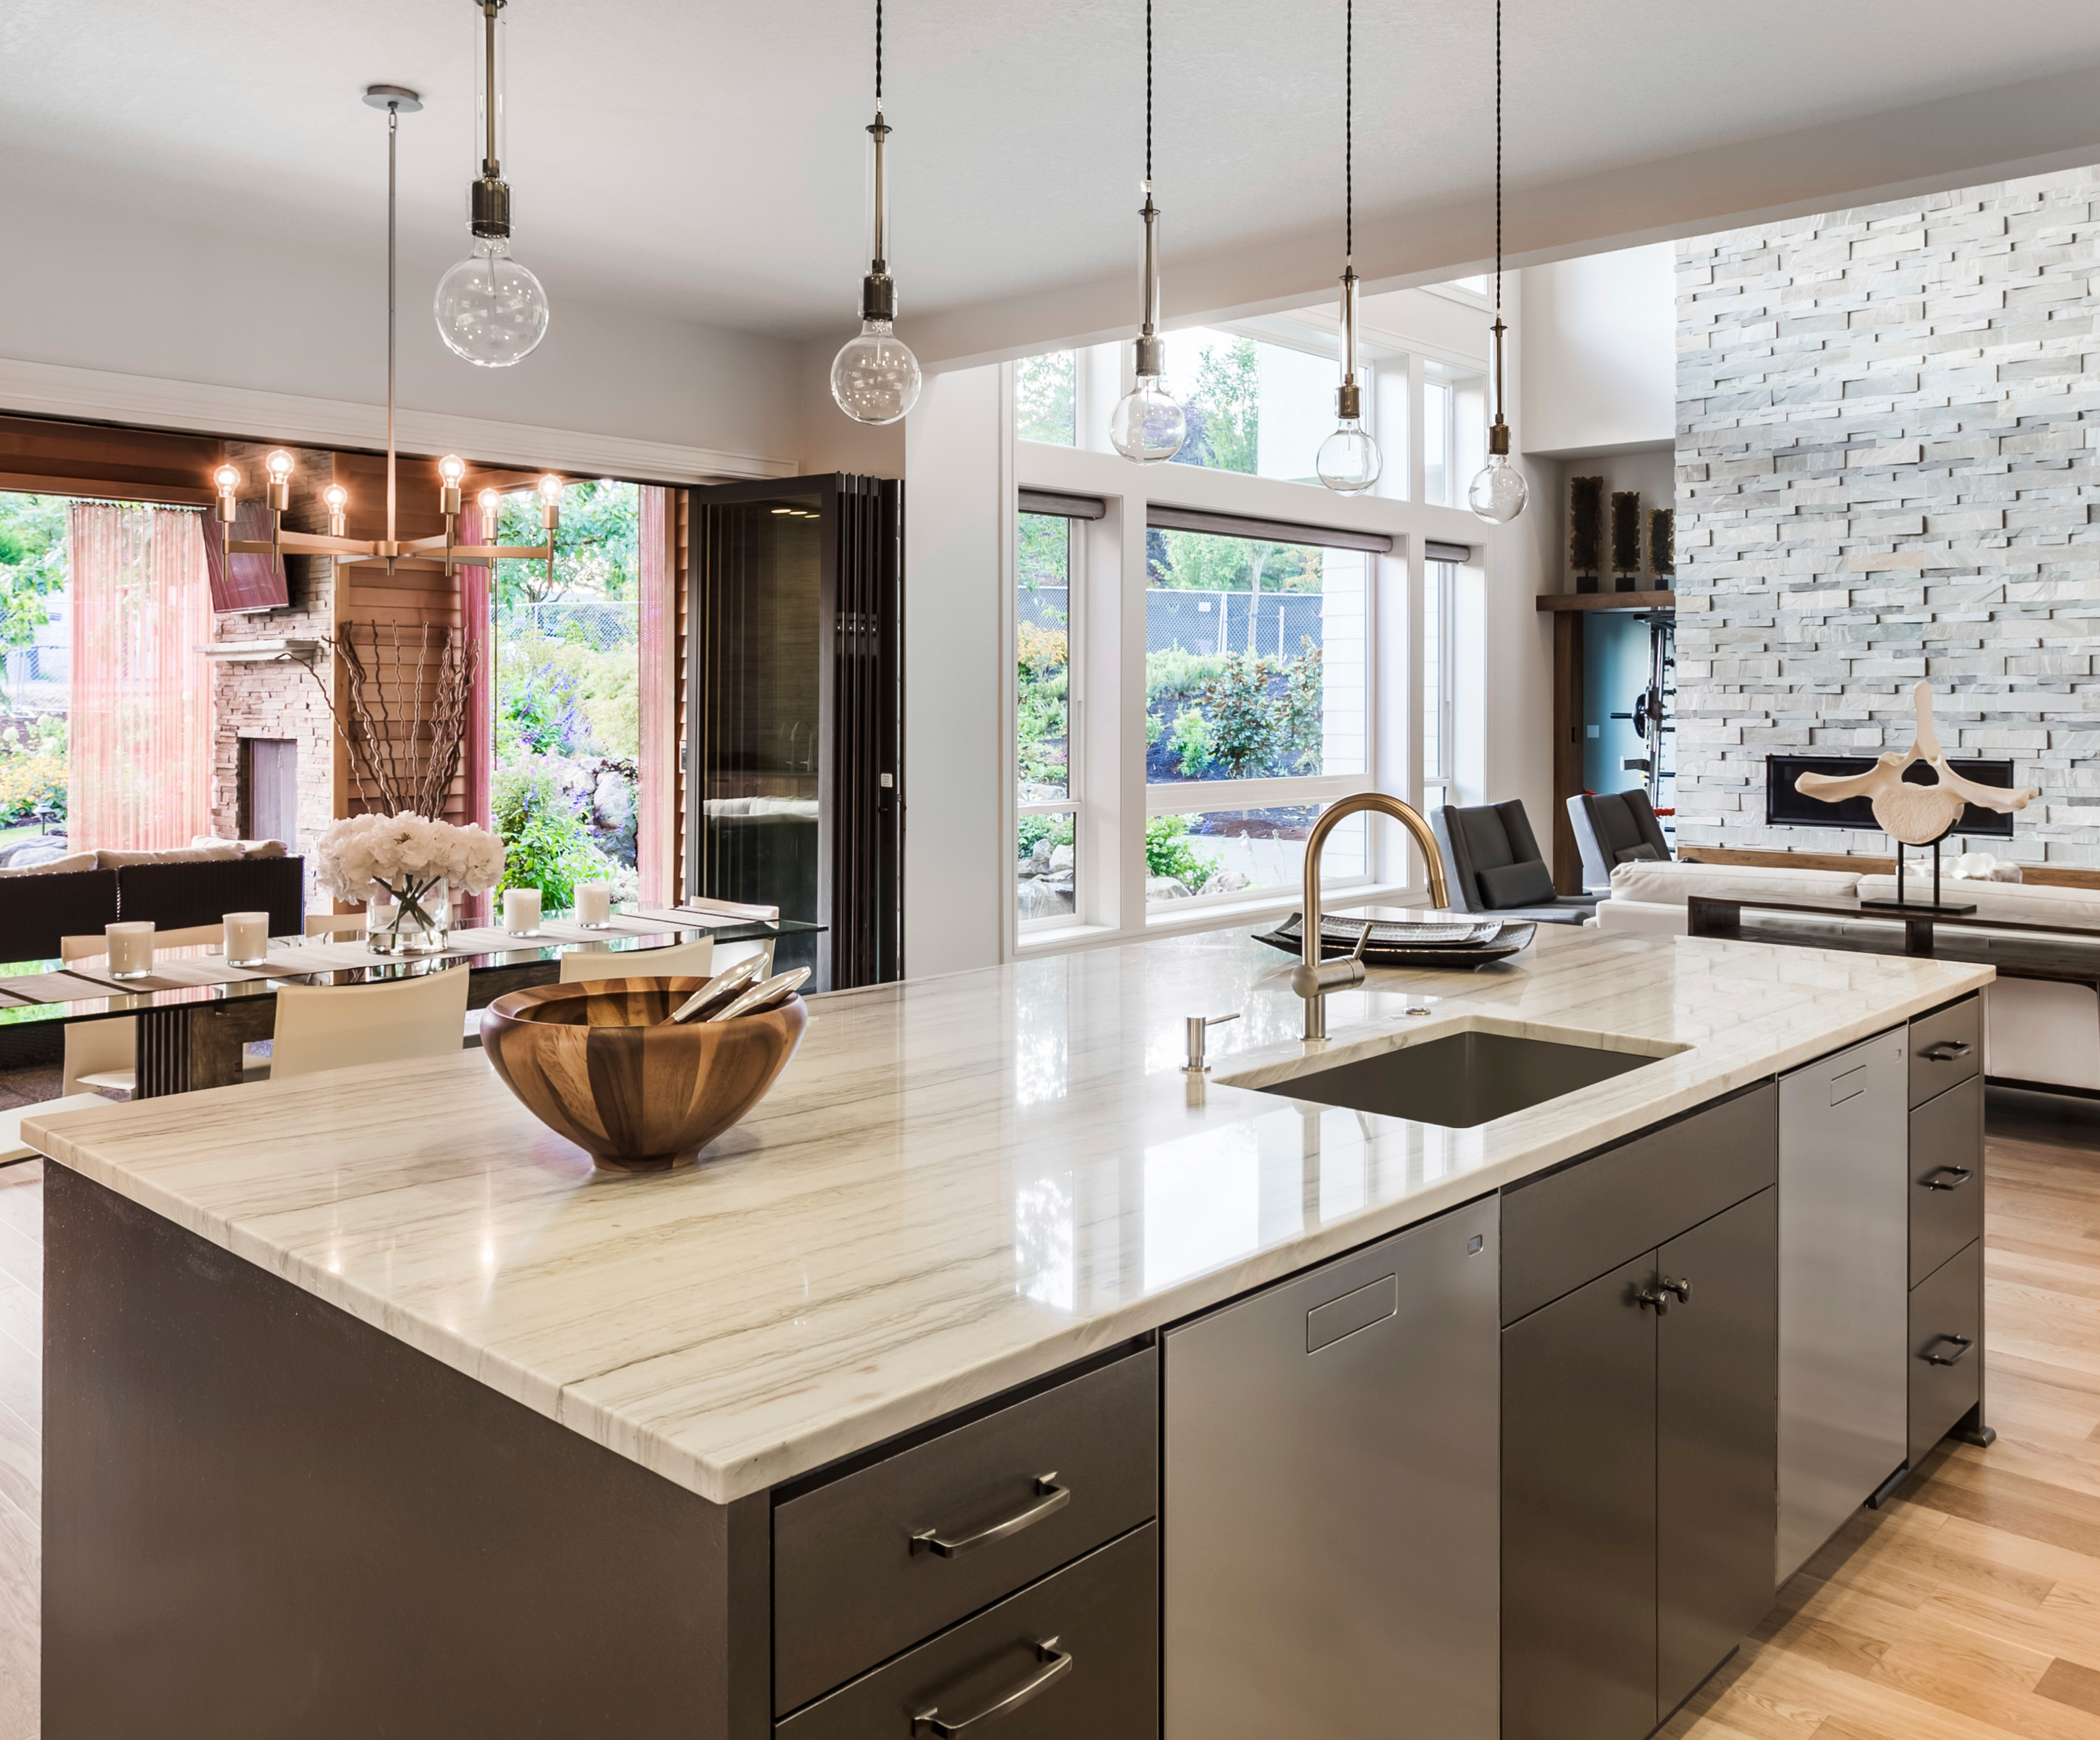 Famous Andco Kitchen And Bath Ideas - Home Design Ideas and ...